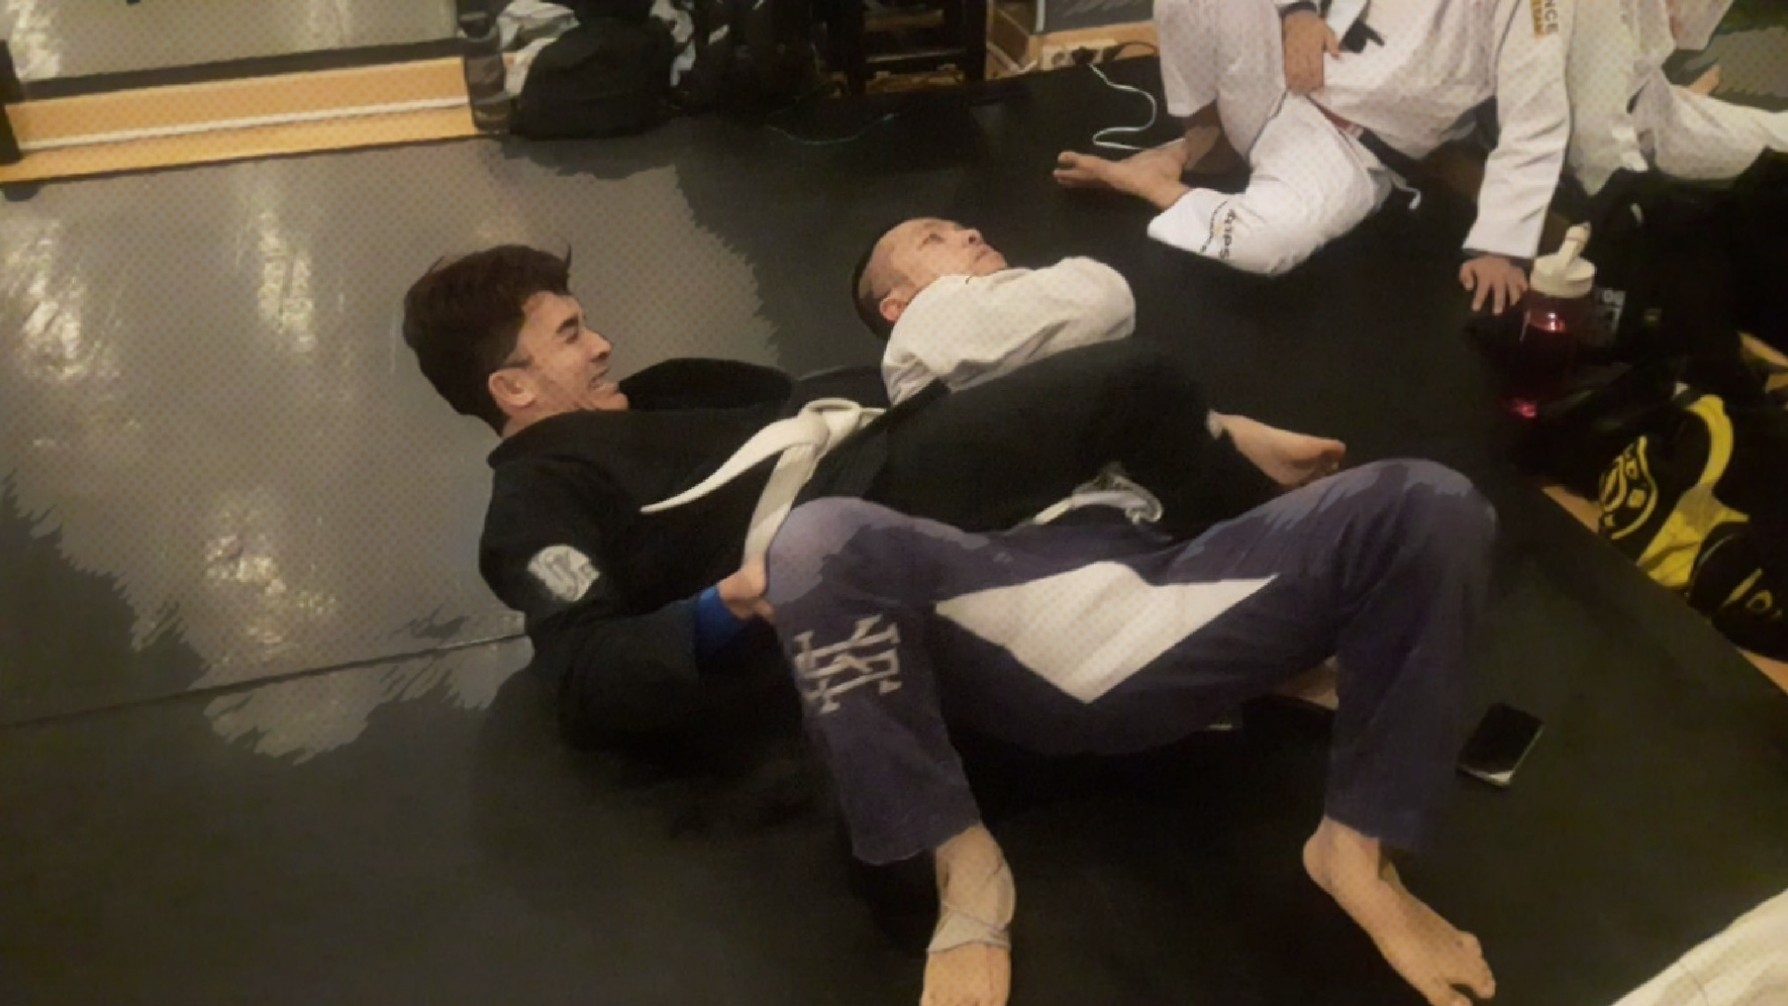 New Sparring Video: Bow & Arrow Choke Finish